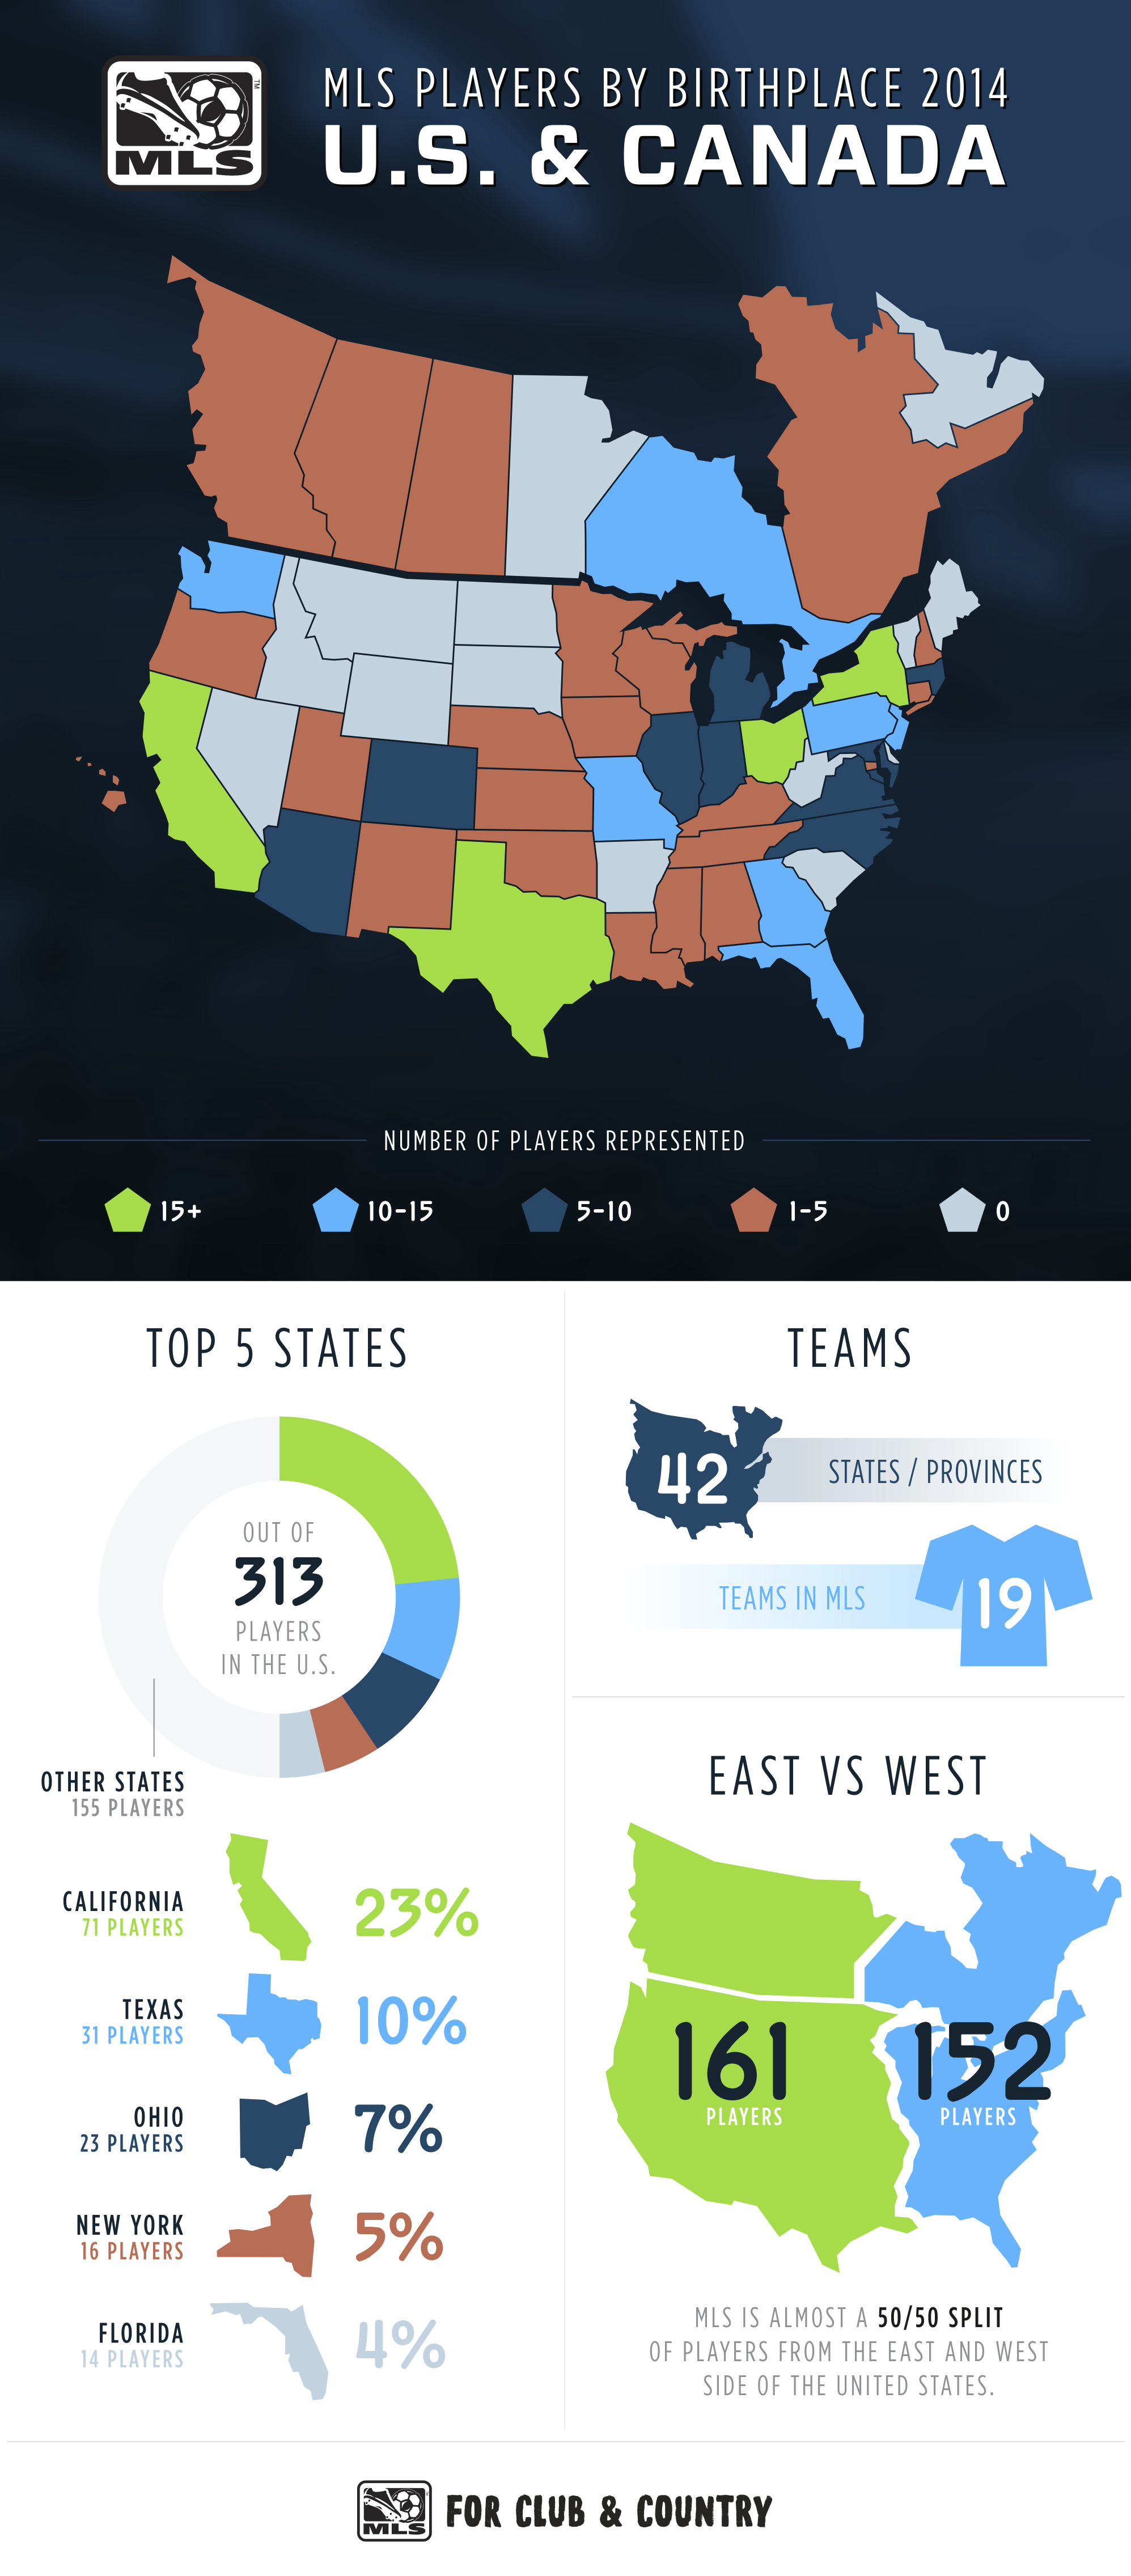 MLS Players By Birthplace In The U.S. And Canada